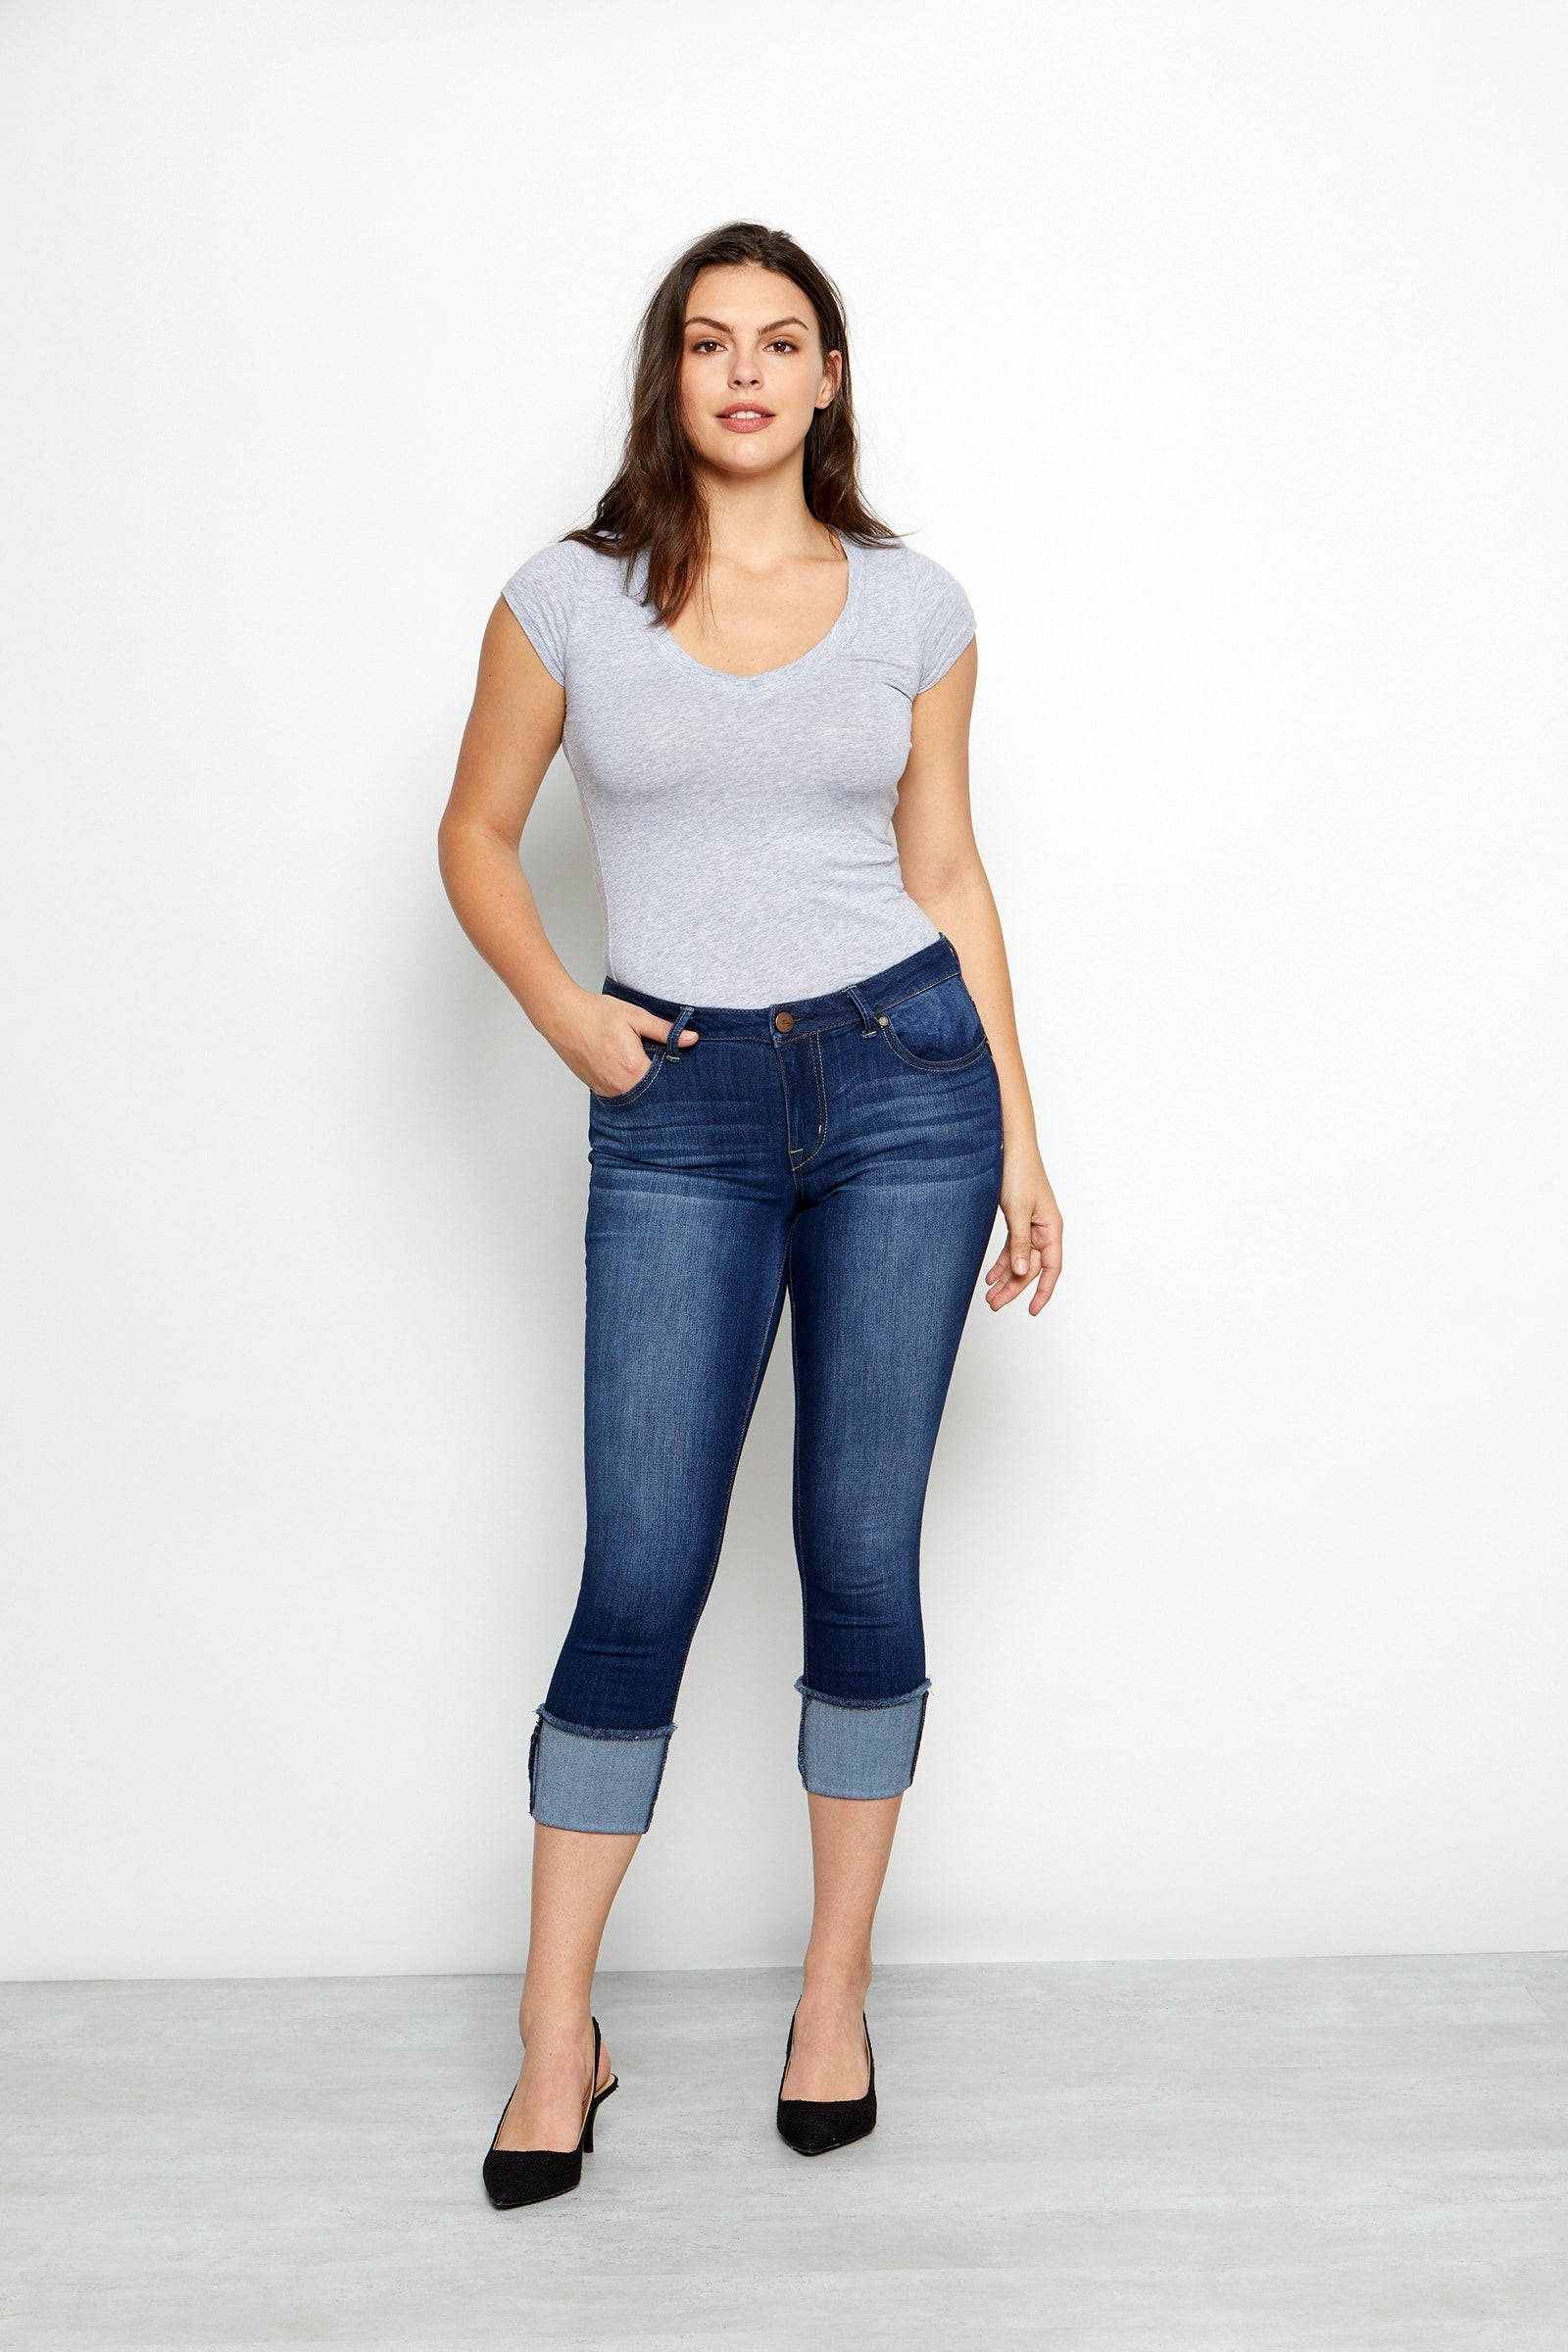 Curvy Vintage Denim Roll Cuff Jeans In Erica